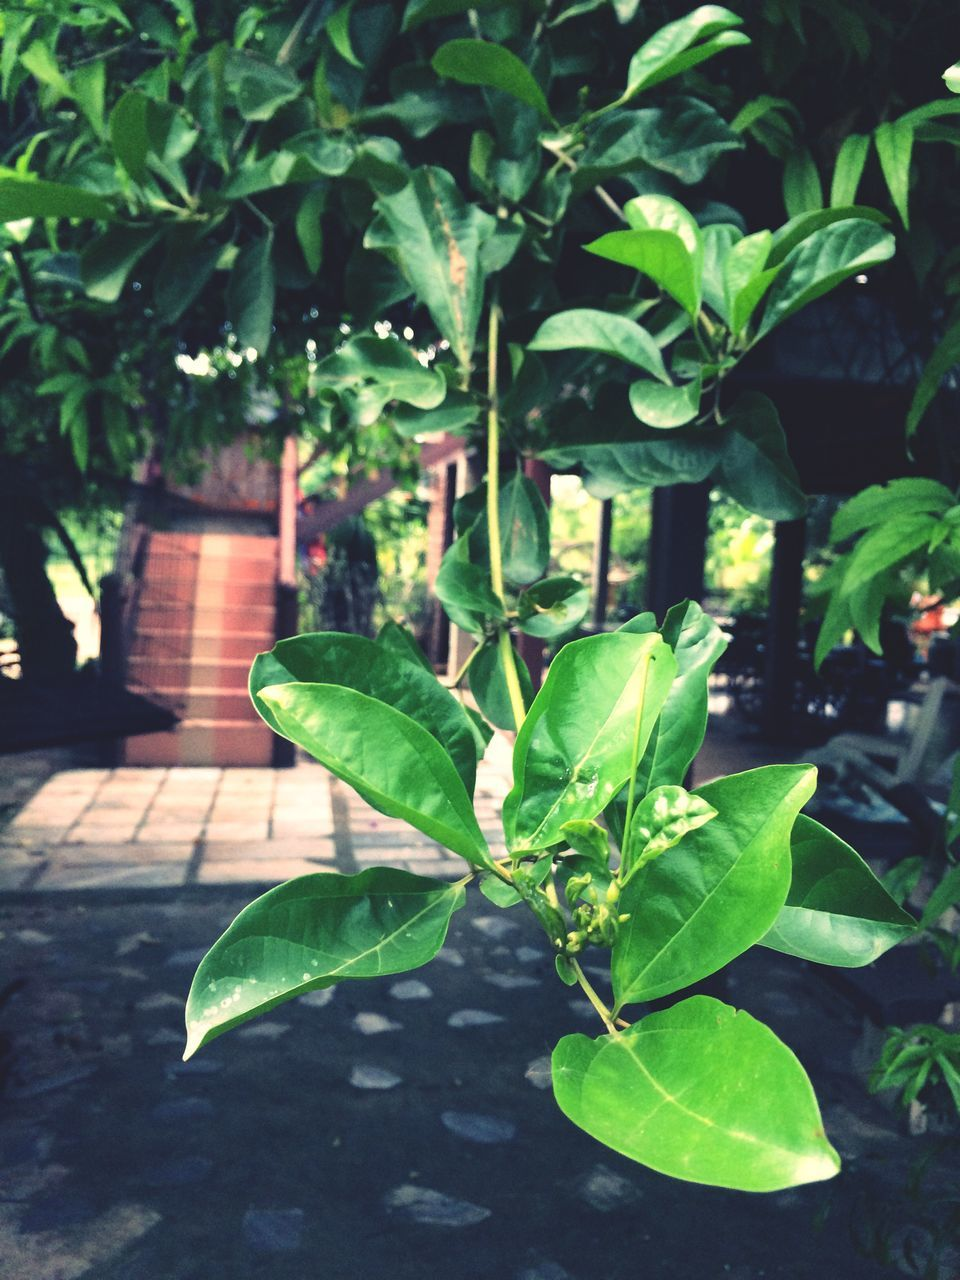 leaf, green color, growth, plant, outdoors, nature, day, no people, close-up, freshness, beauty in nature, tree